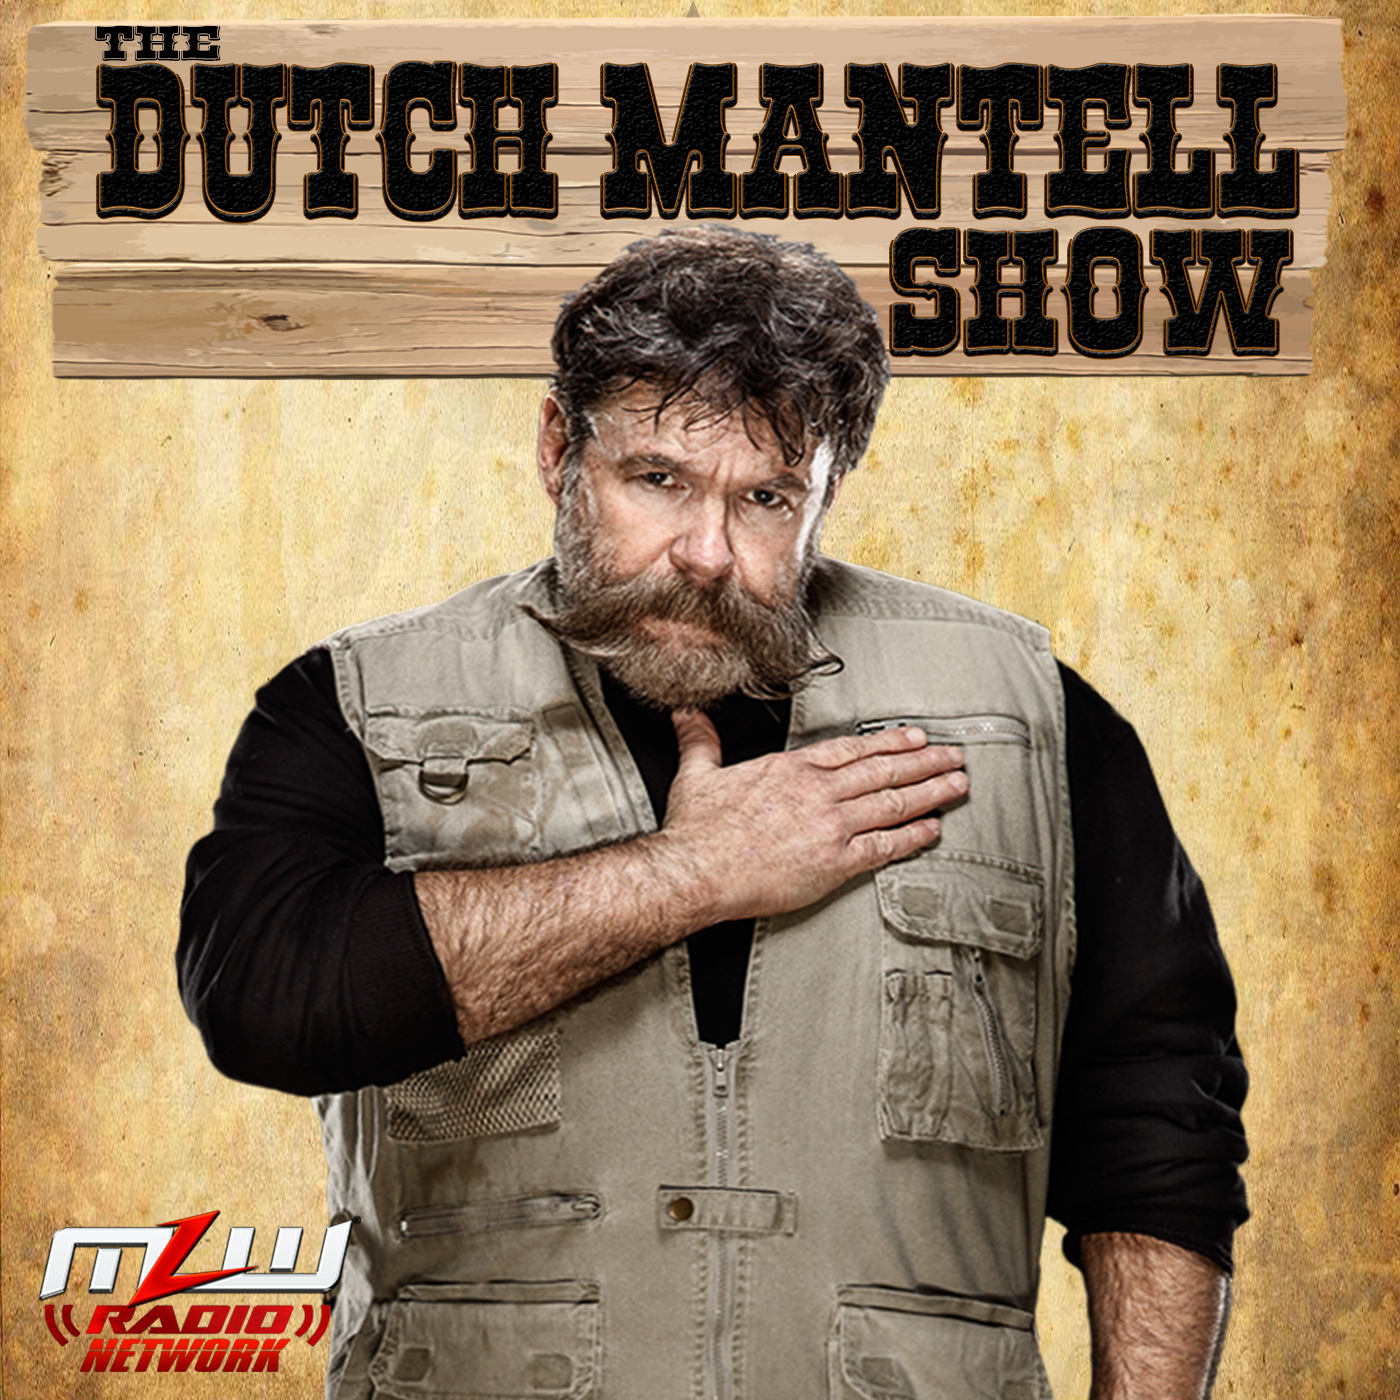 Down and Dirty with Dutch Mantell